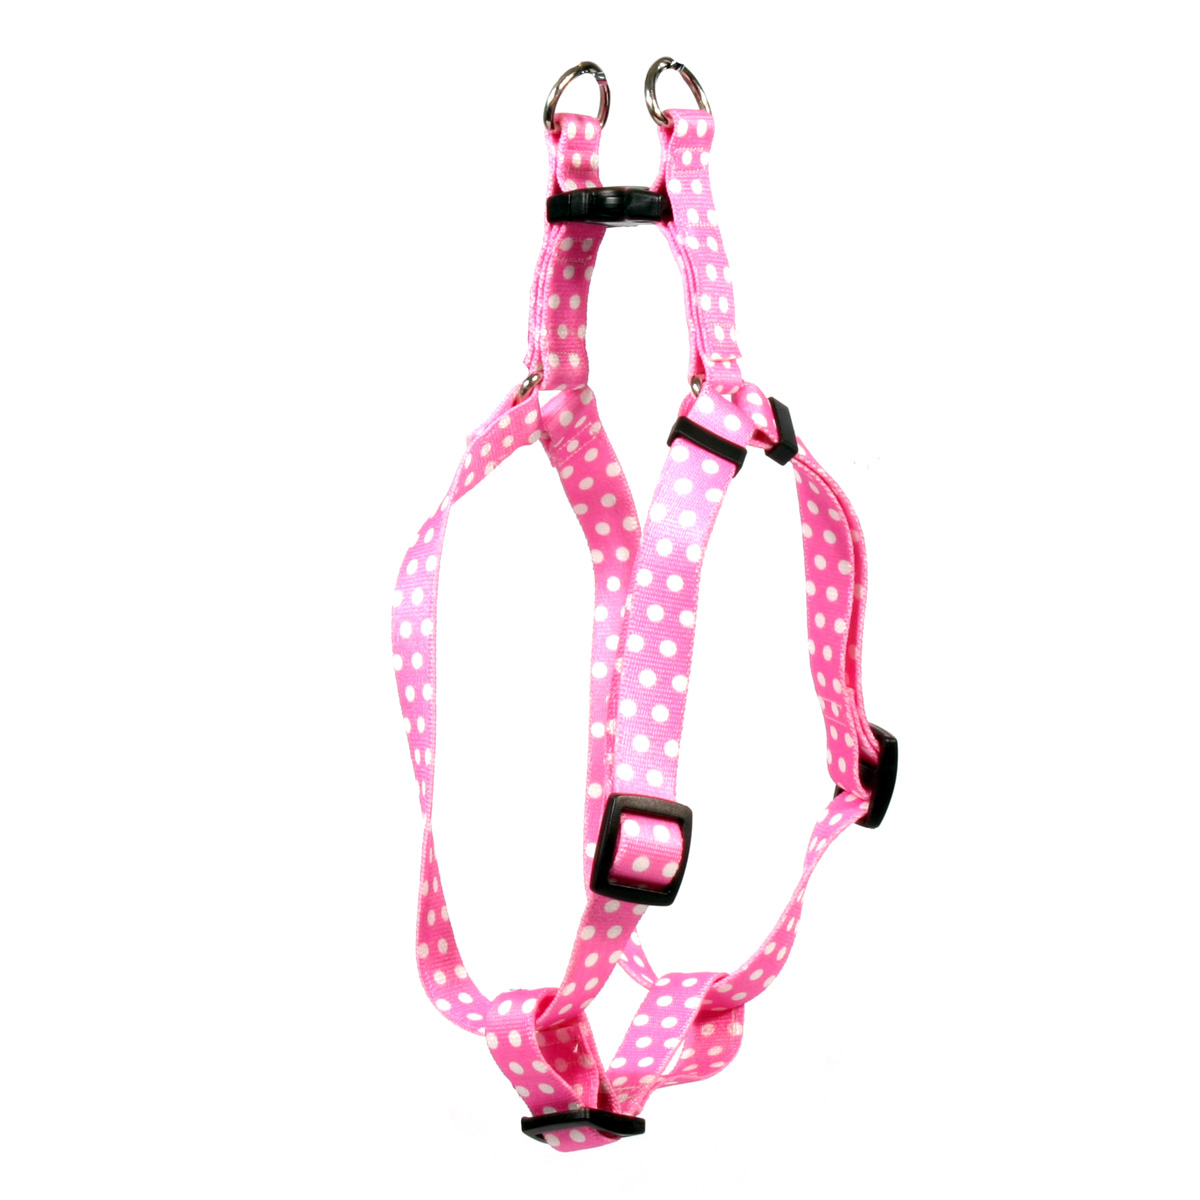 New Pink Polka Dot Step-In Harness